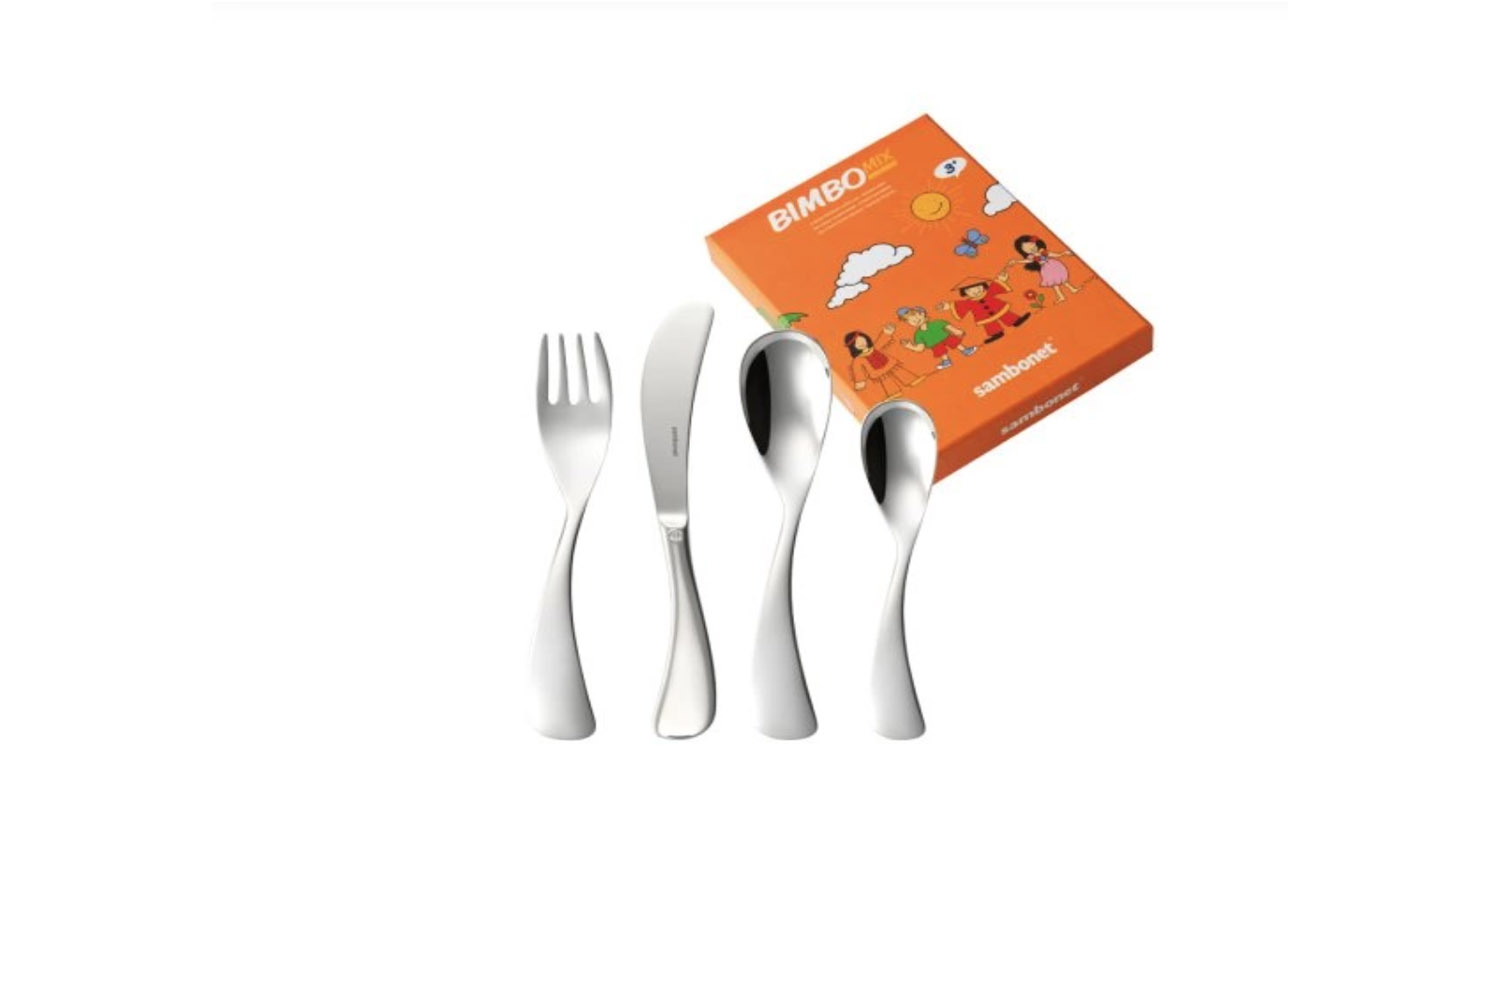 10 Easy Pieces Childrens Flatware The Sambonet Bimbo Mix Stainless Steel Baby Flatware is €\29.90 at Rosenthal in Germany.